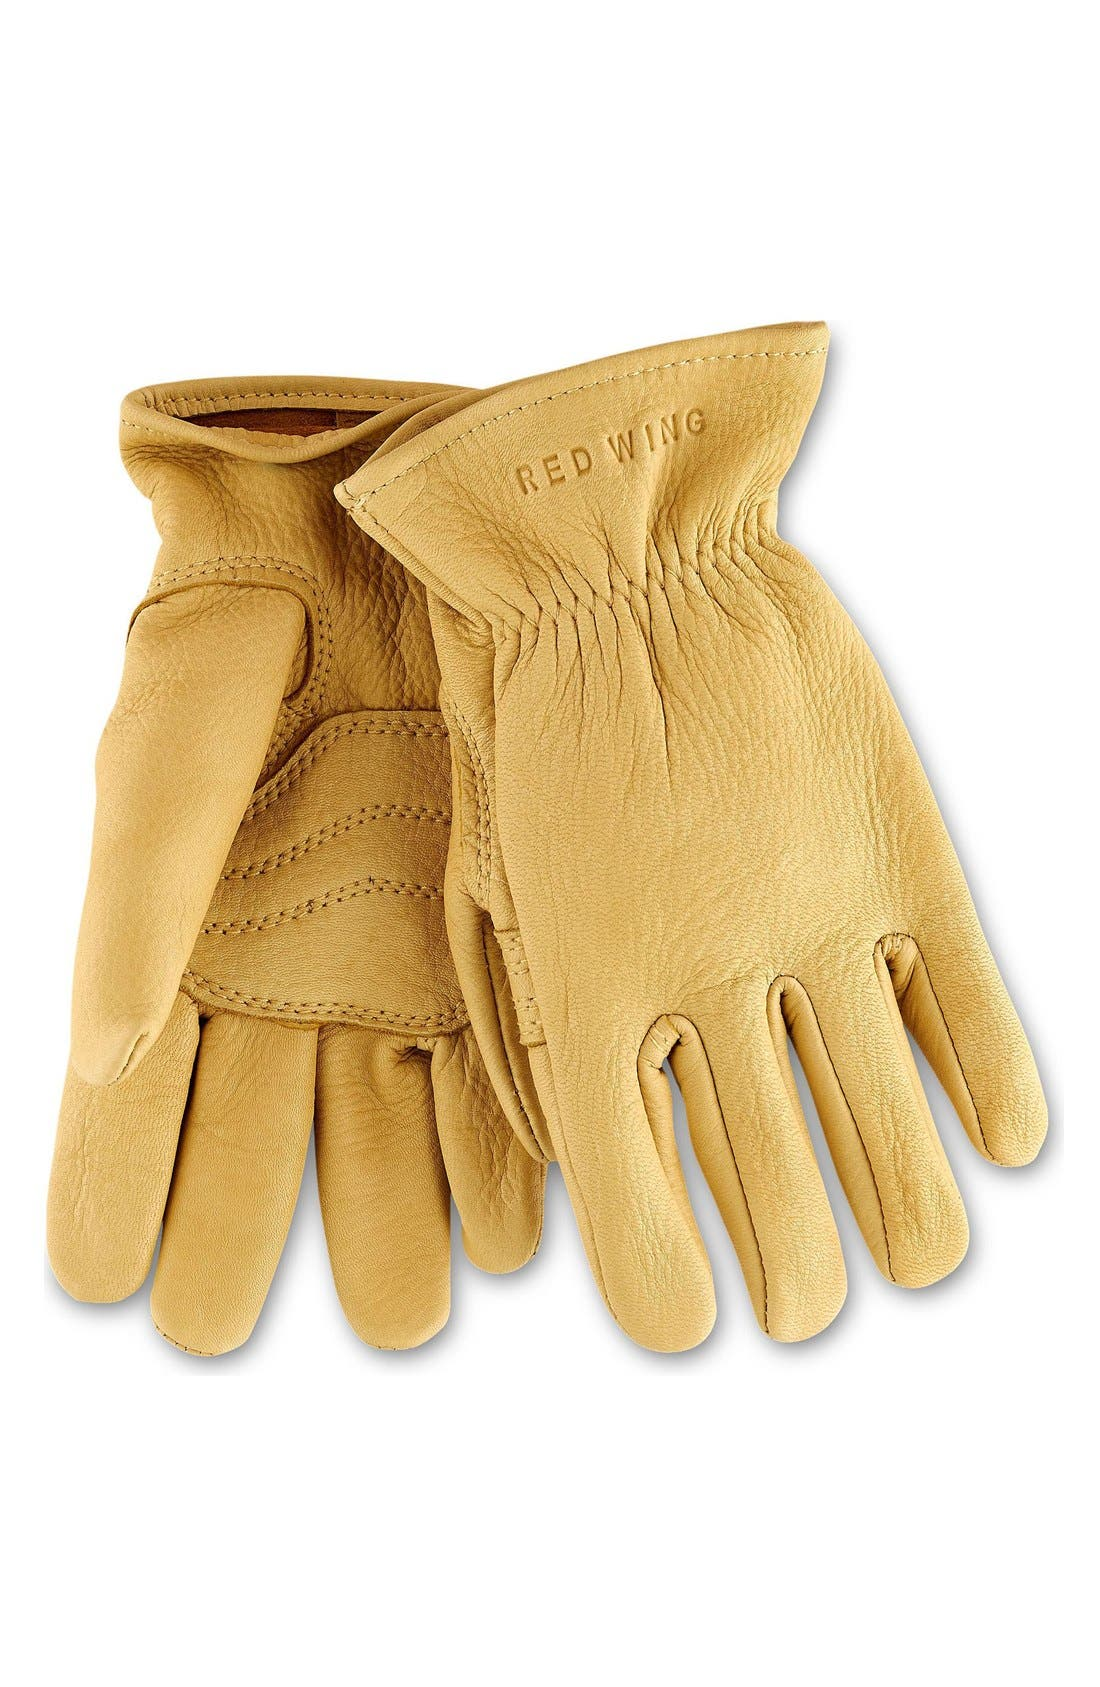 Buckskin Leather Gloves,                         Main,                         color, Yellow